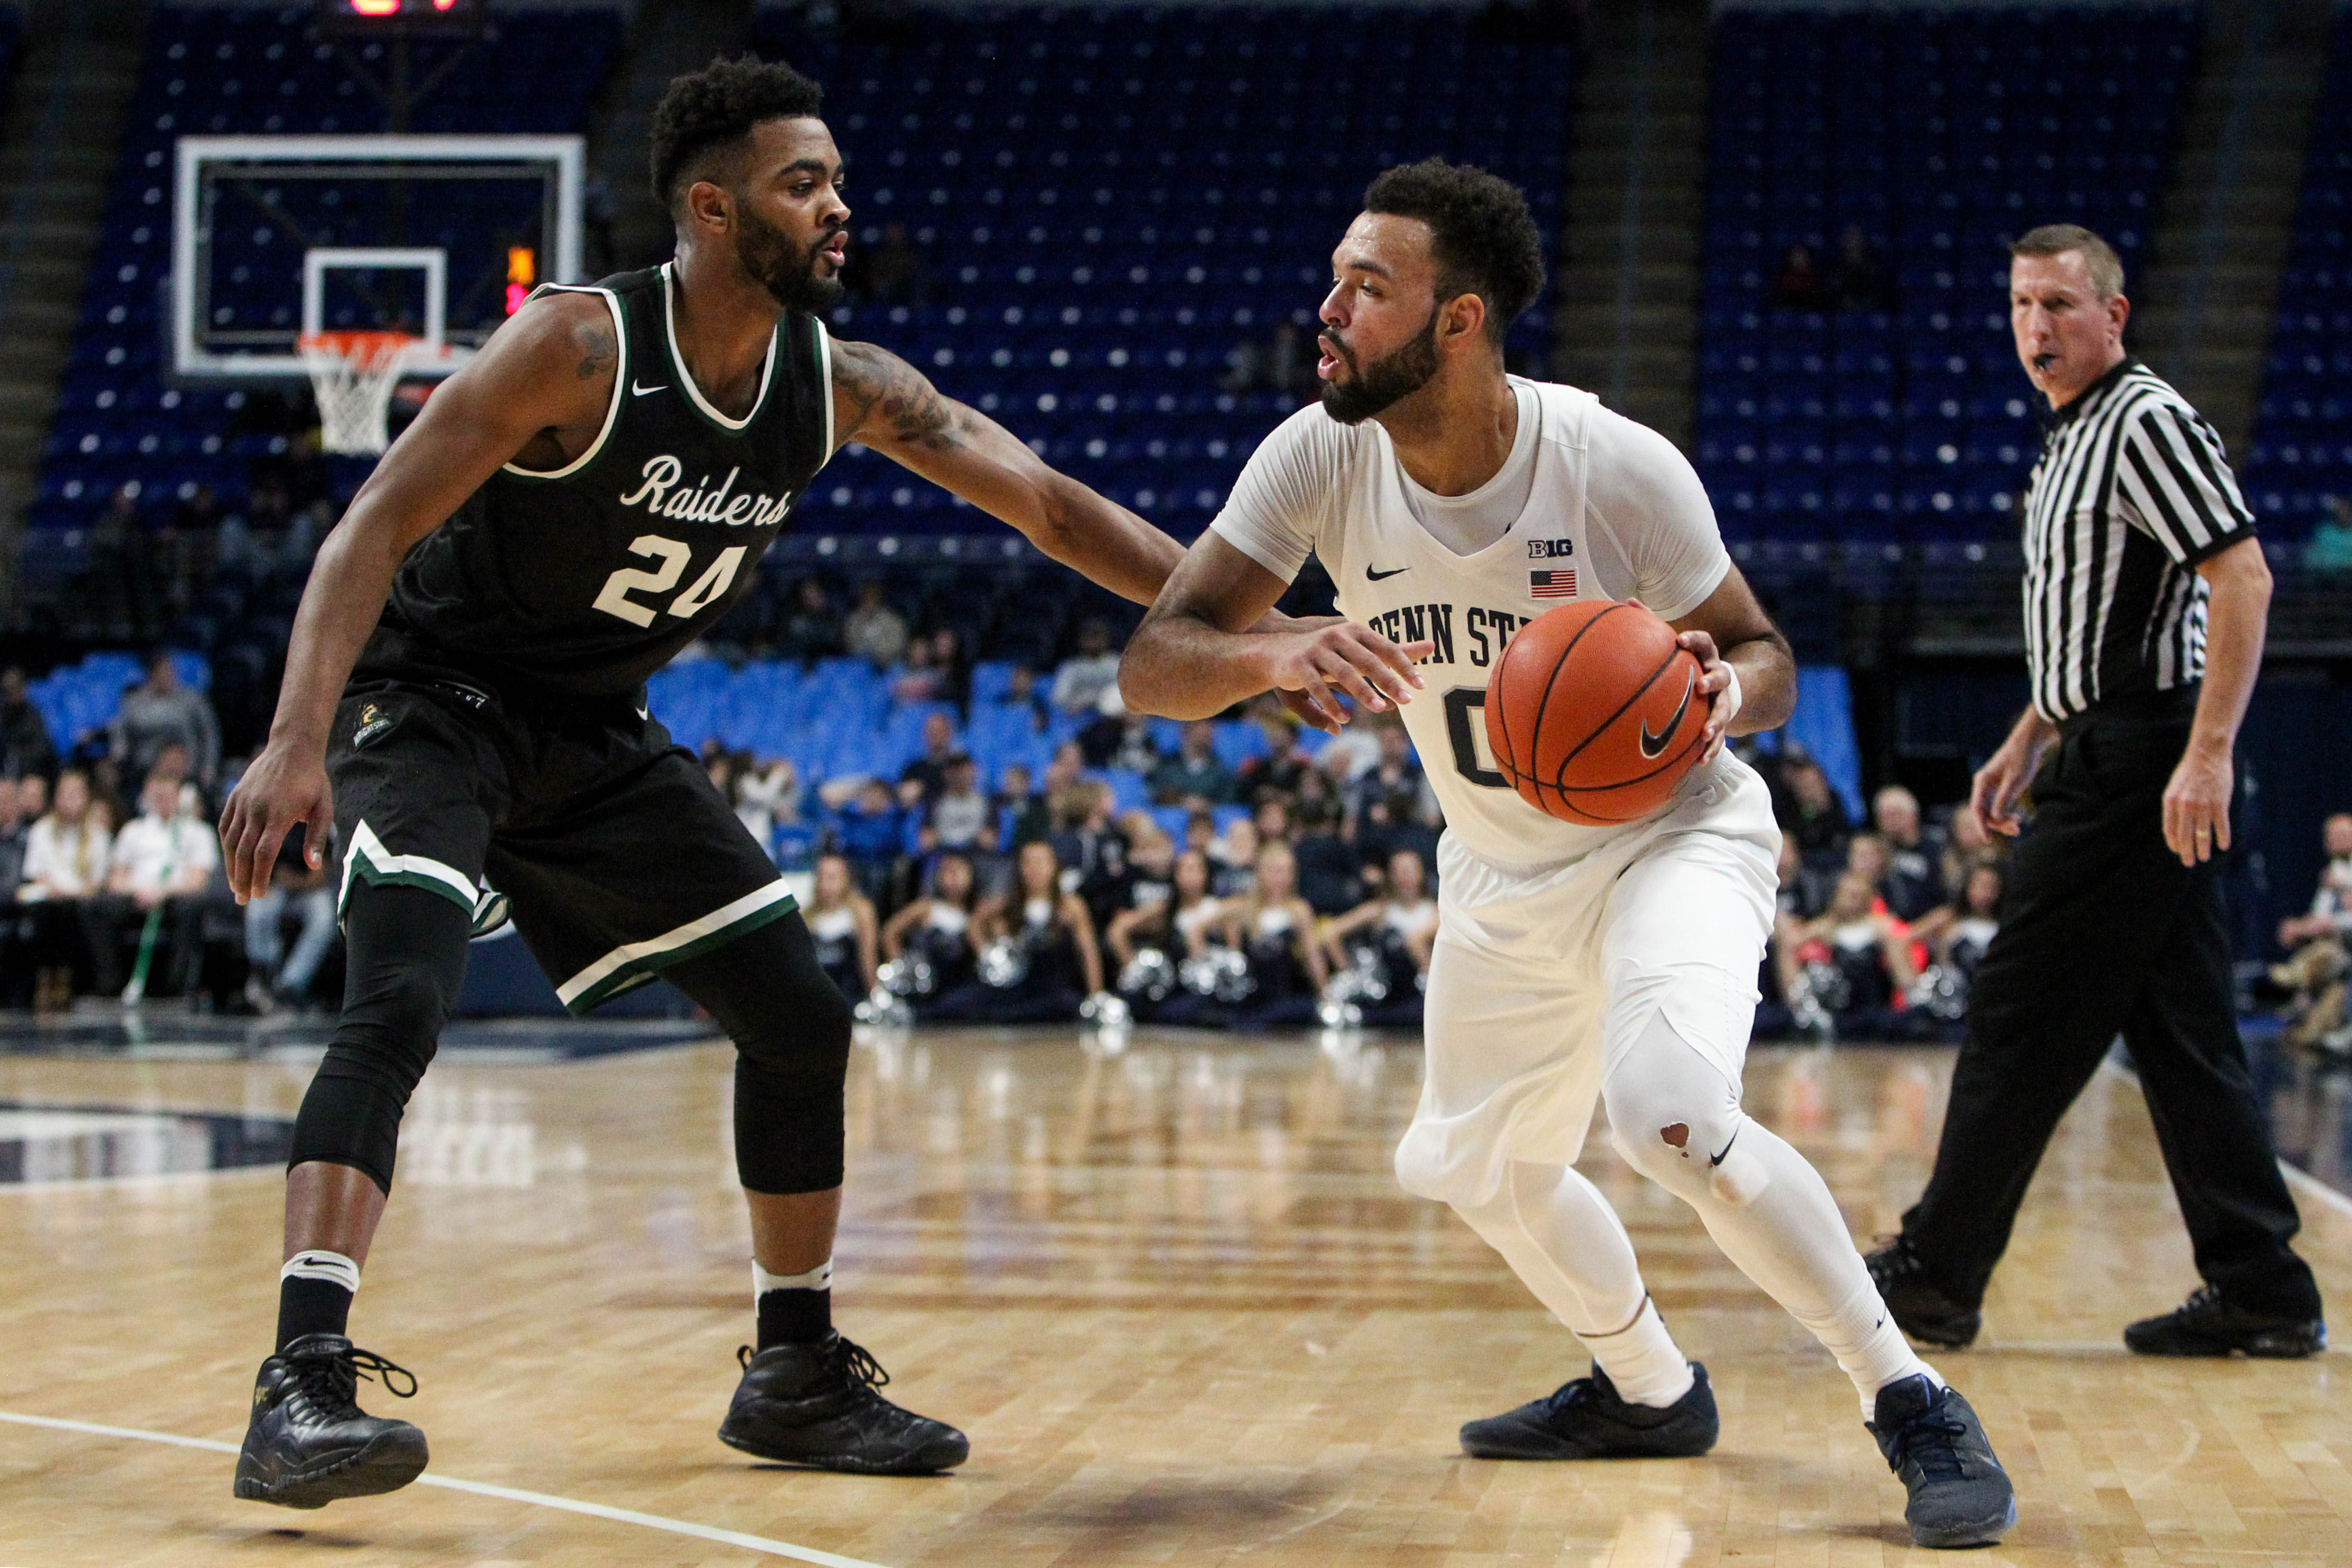 9721174-ncaa-basketball-wright-state-at-penn-state